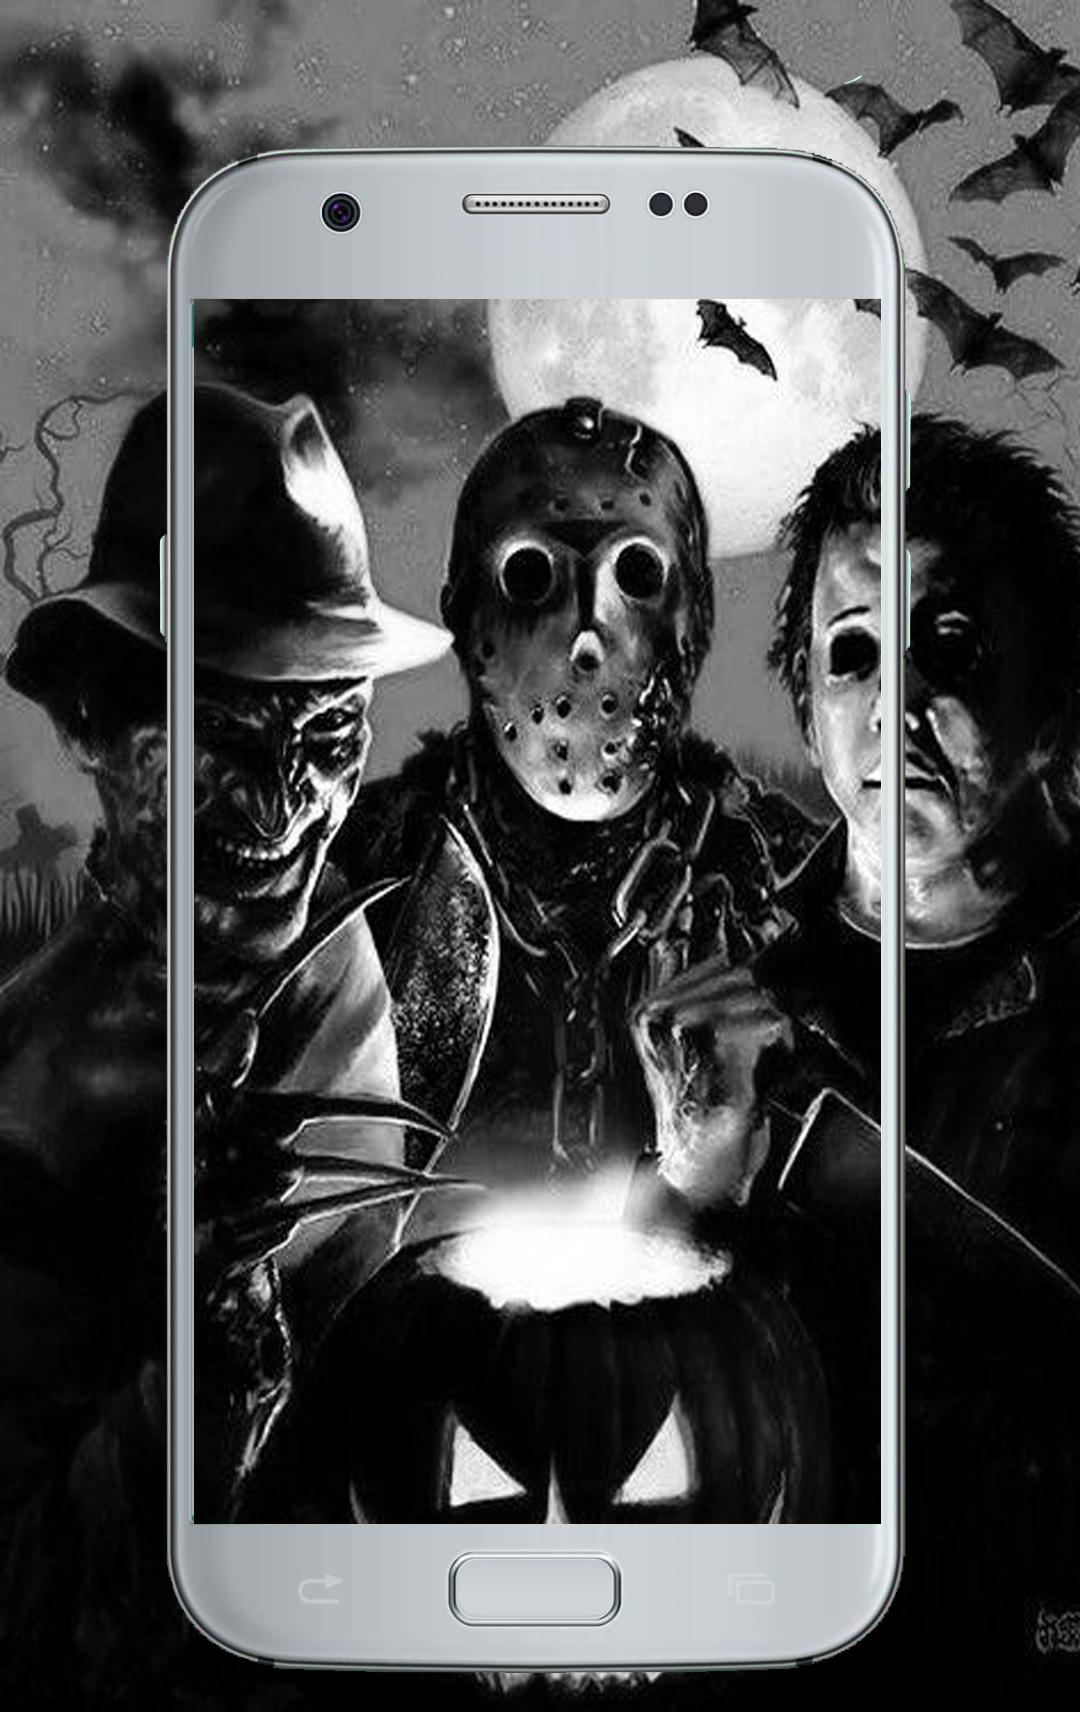 Wallpaper Hd For Michael Myers For Android Apk Download